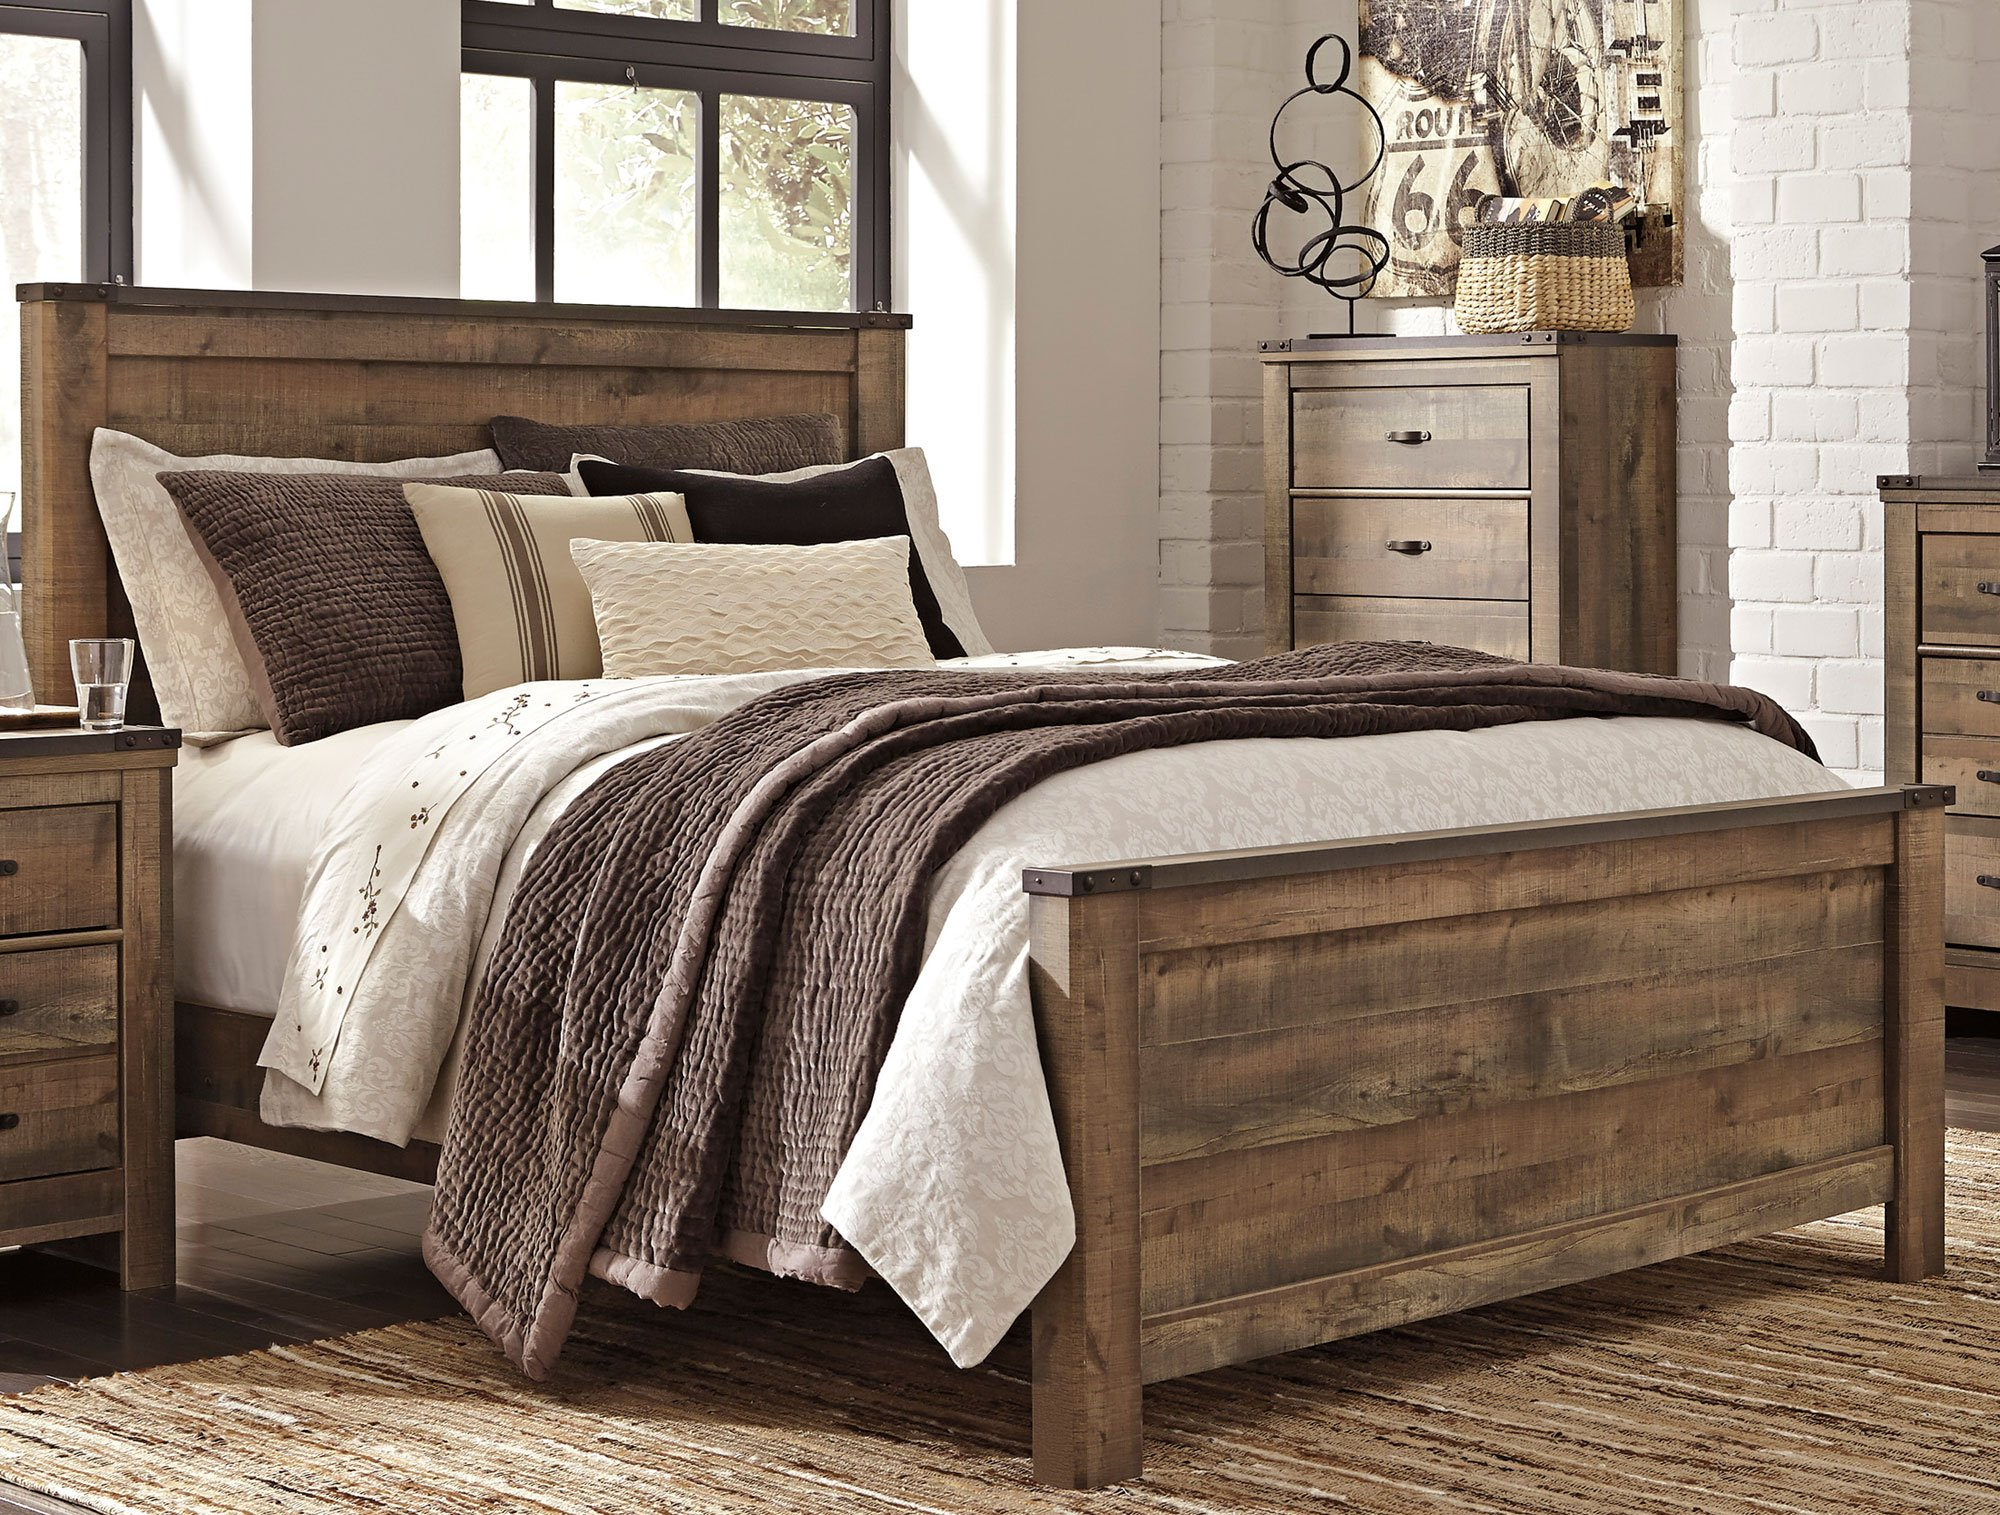 Rustic casual contemporary 6 piece queen bedroom set - Queen size bedroom furniture sets ...